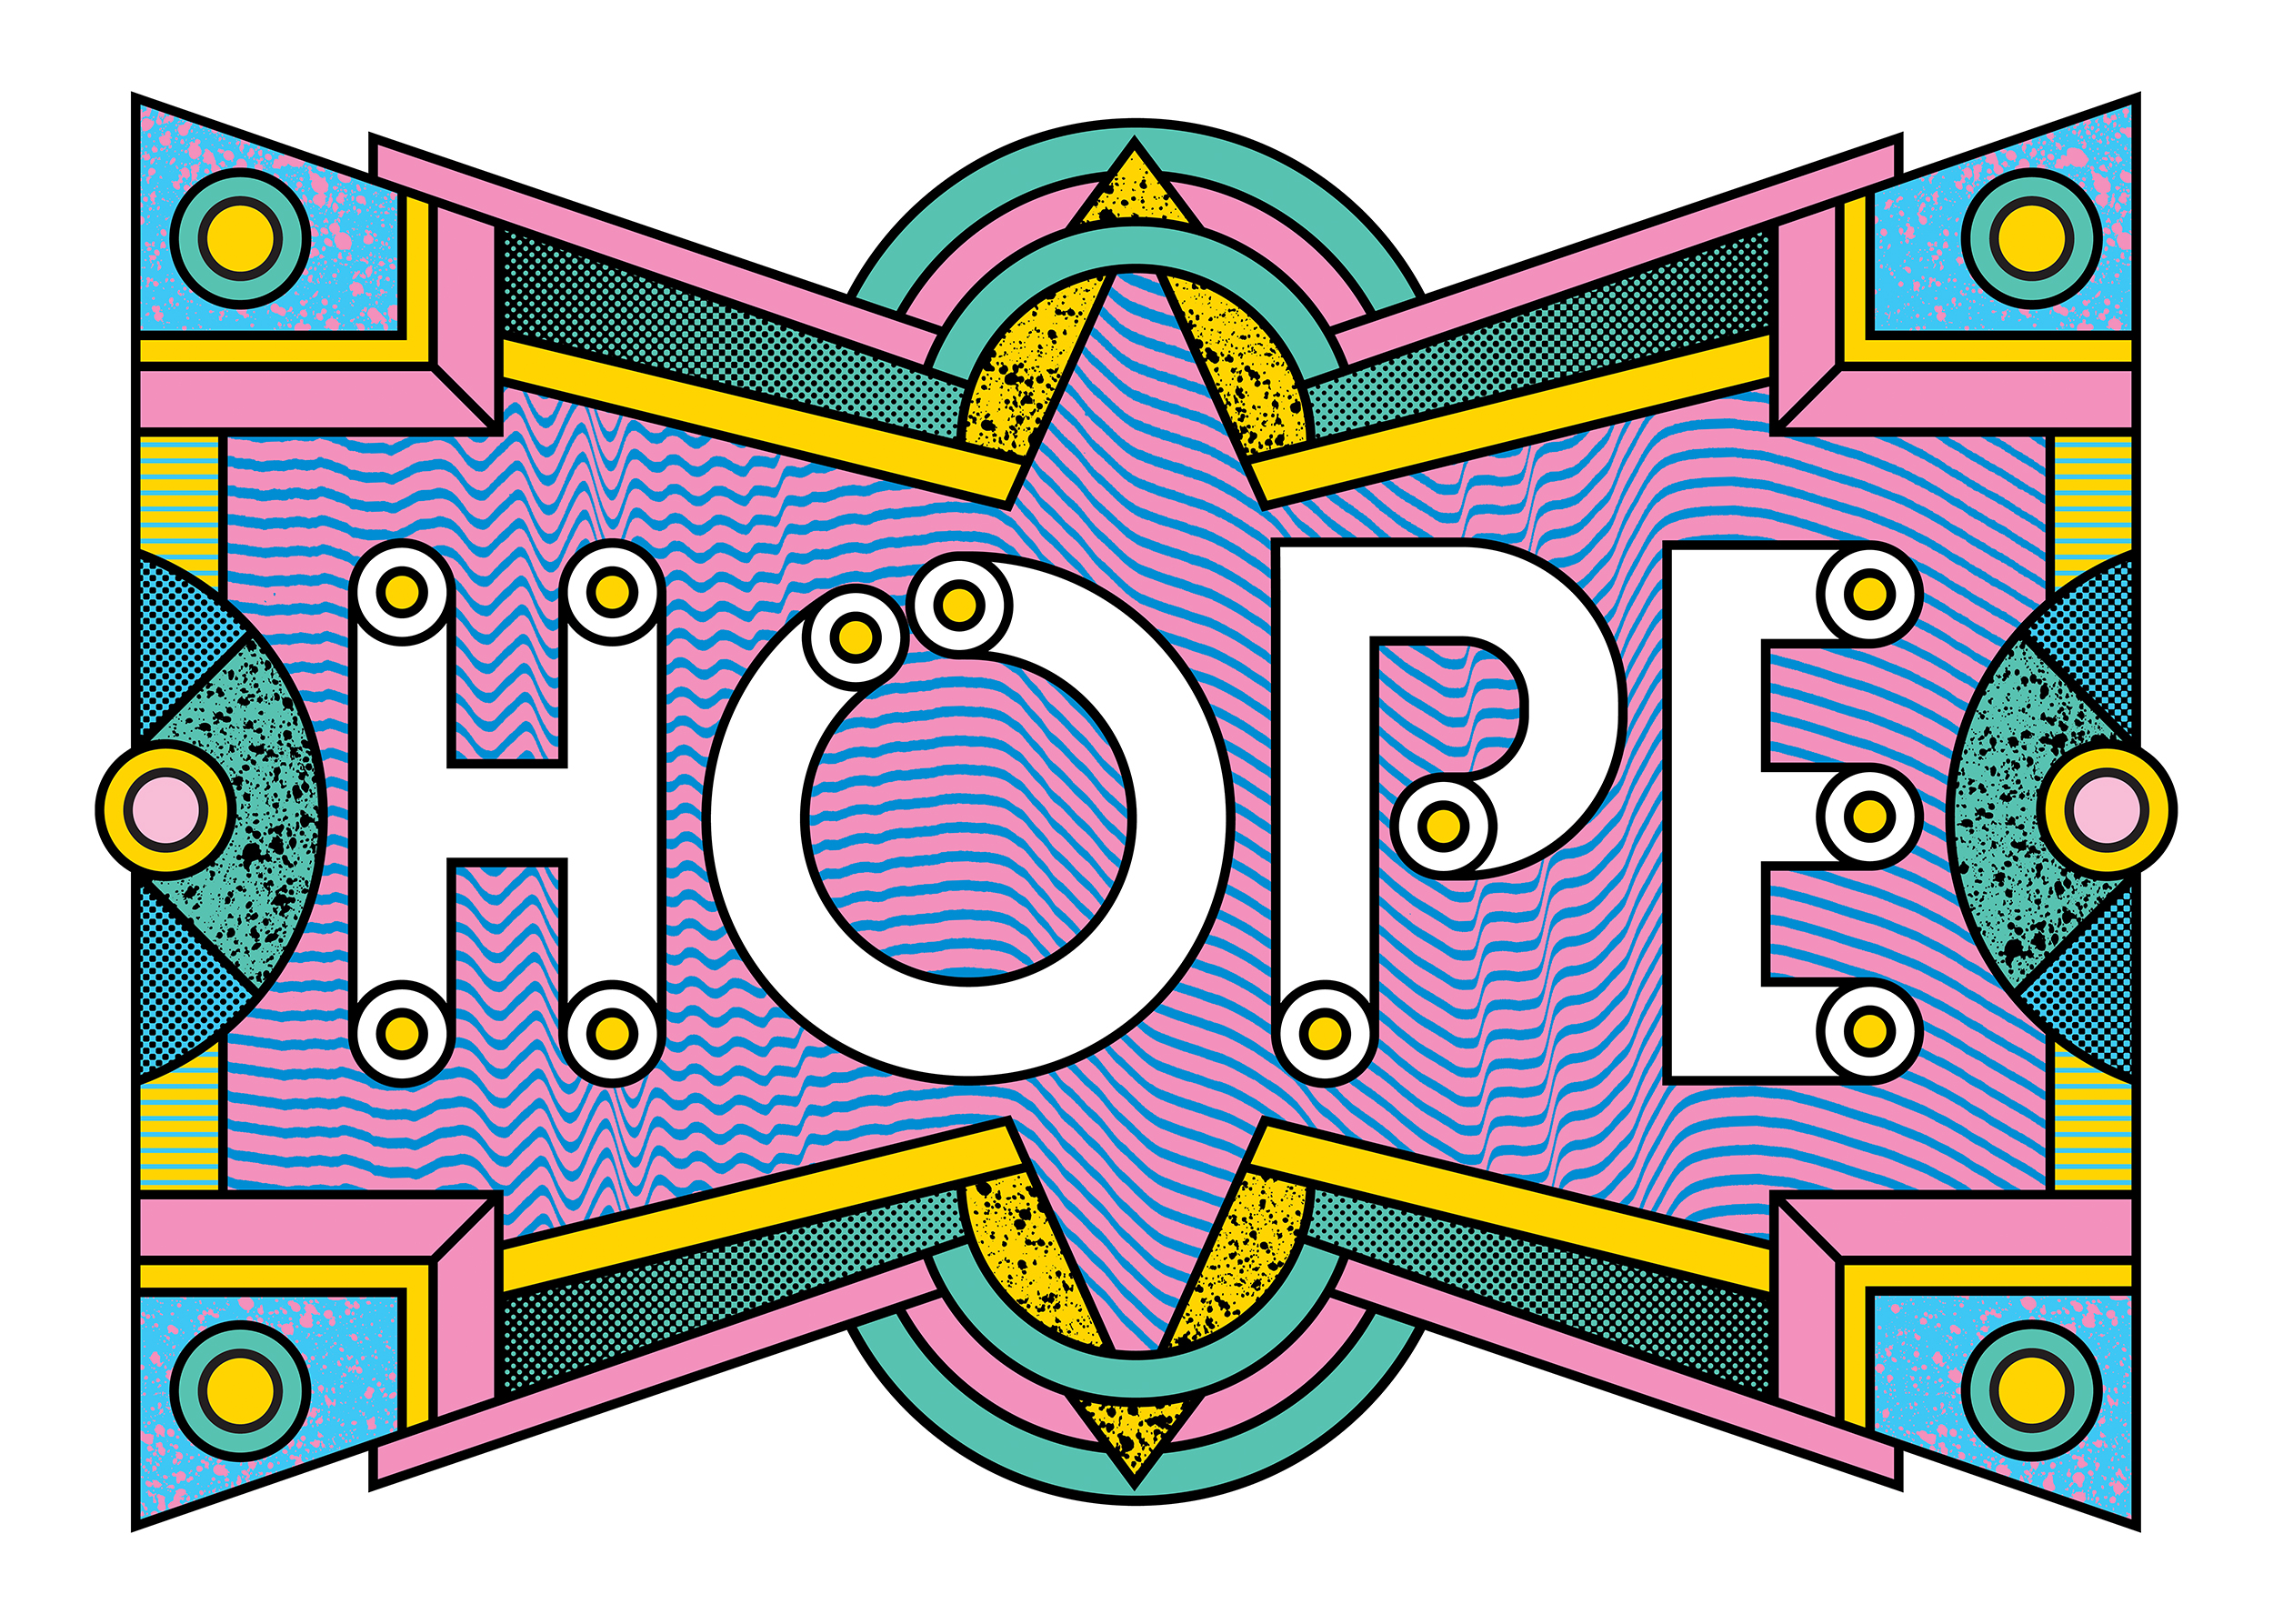 Hope, Rob Lowe, Supermundane, Graphic Art, The Travelling Canvas, Awesome Merchandise,